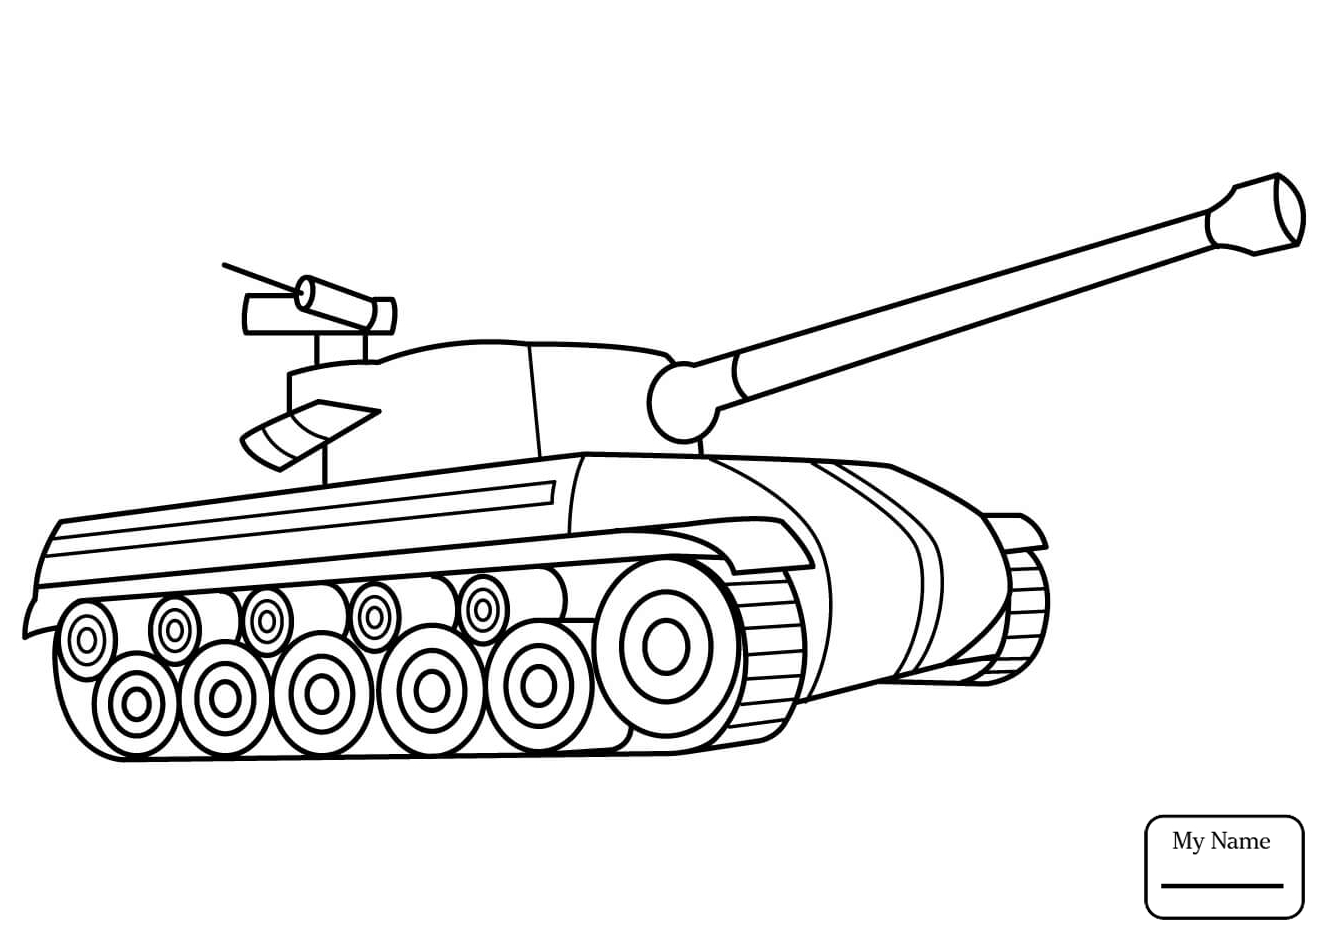 army tank drawing at getdrawings com free for personal use army